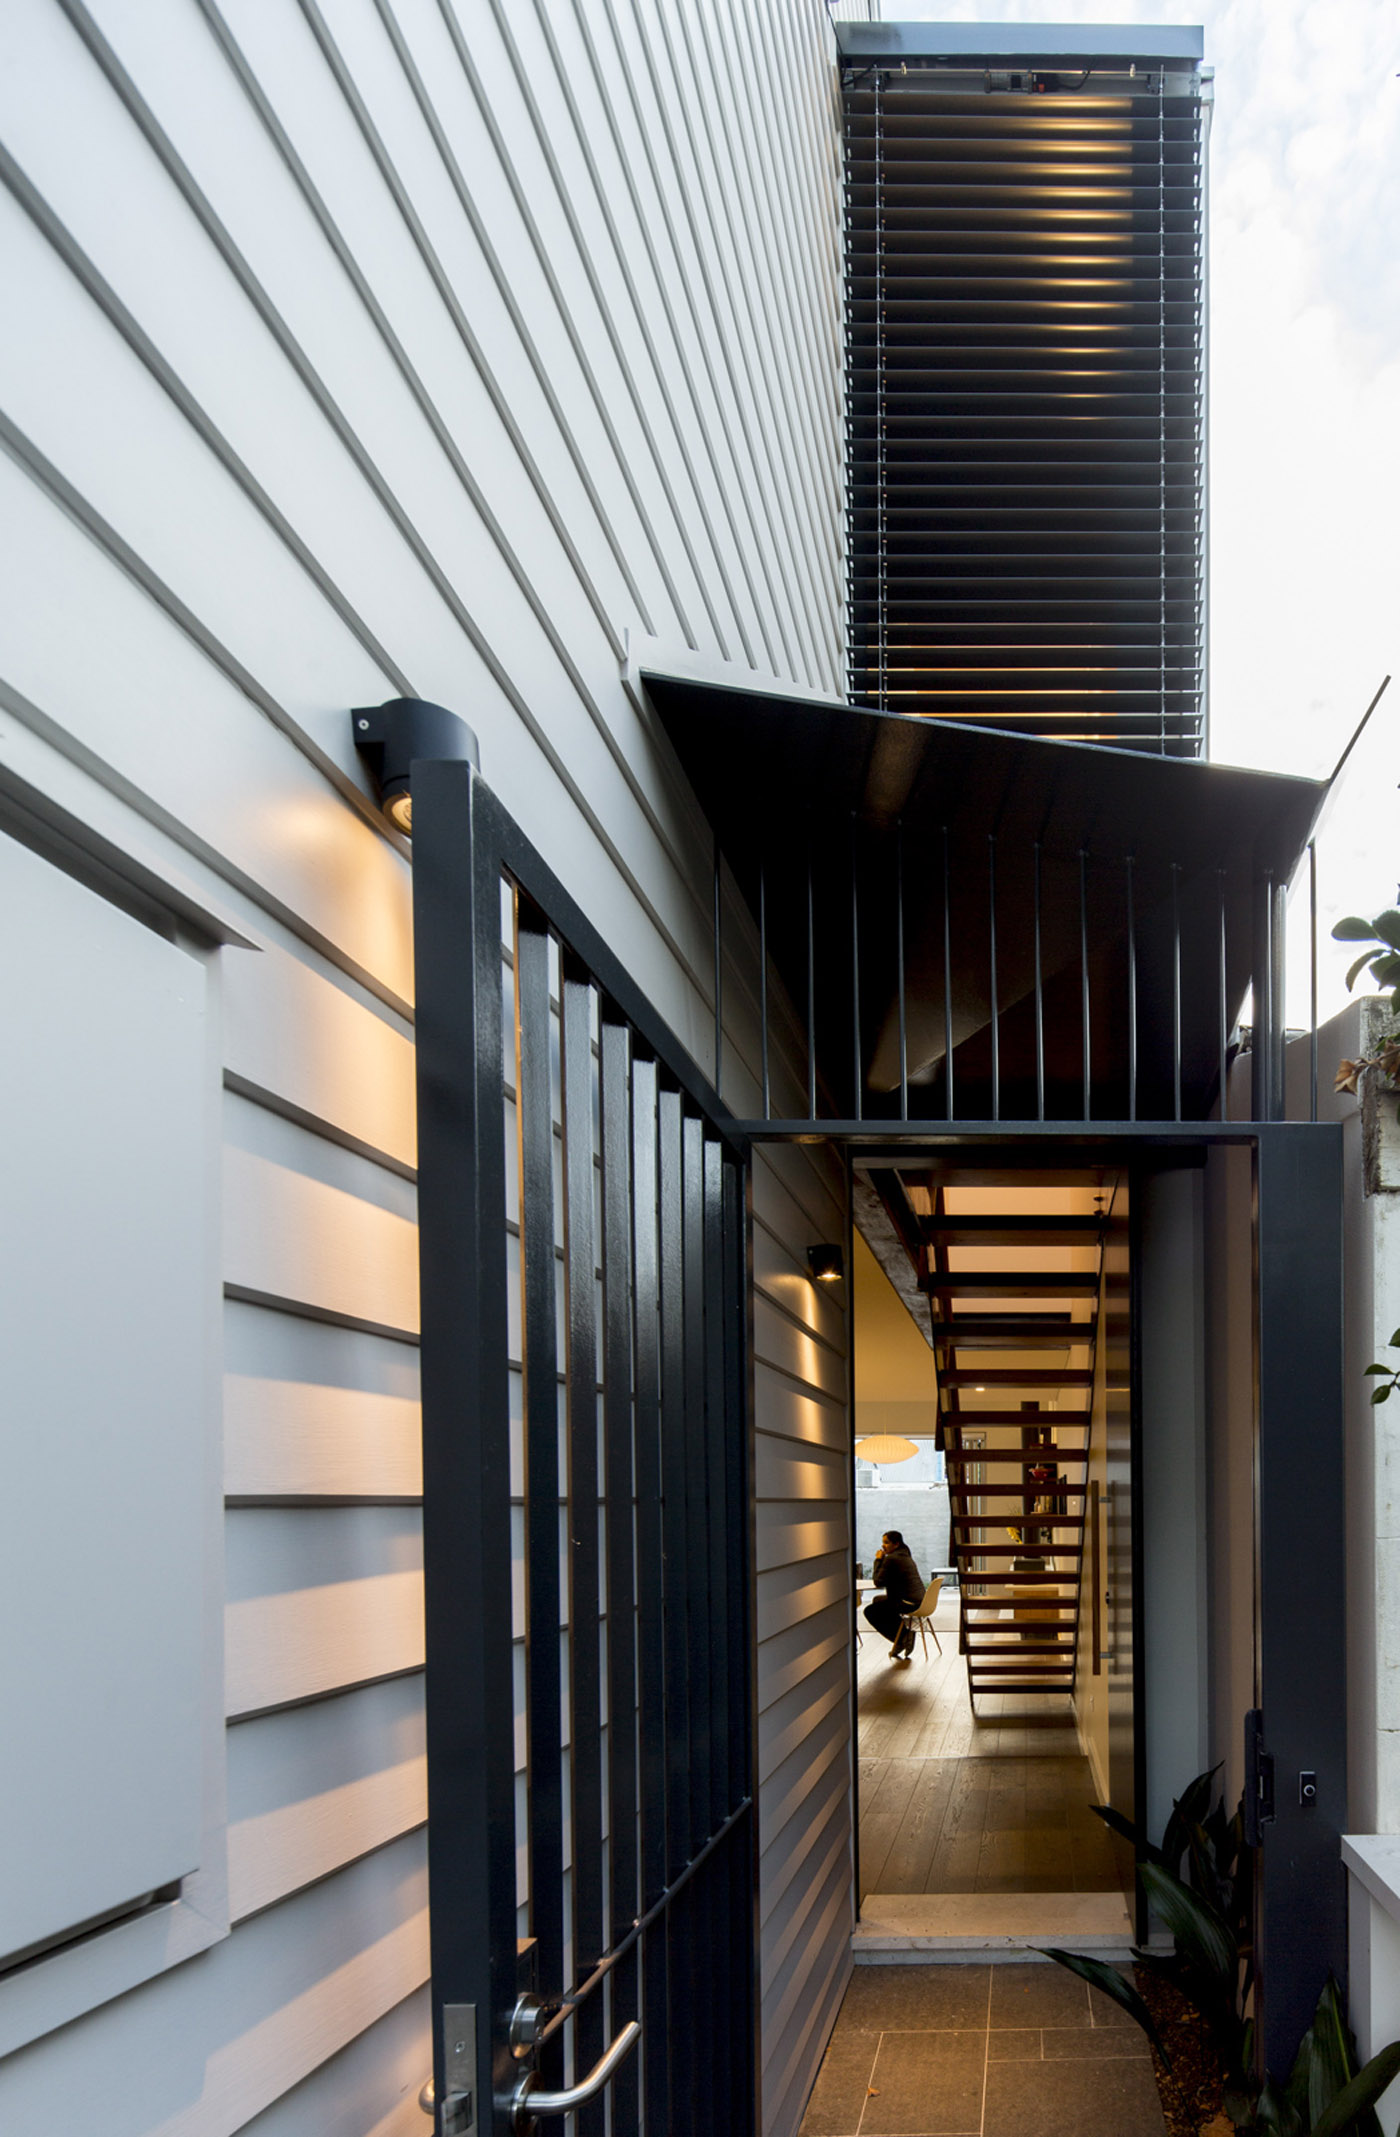 Gandha Kariappa Terrace by Sydney residential architects Sam Crawford Architects. Black powder coated steel side entrance featuring folder steel overhang